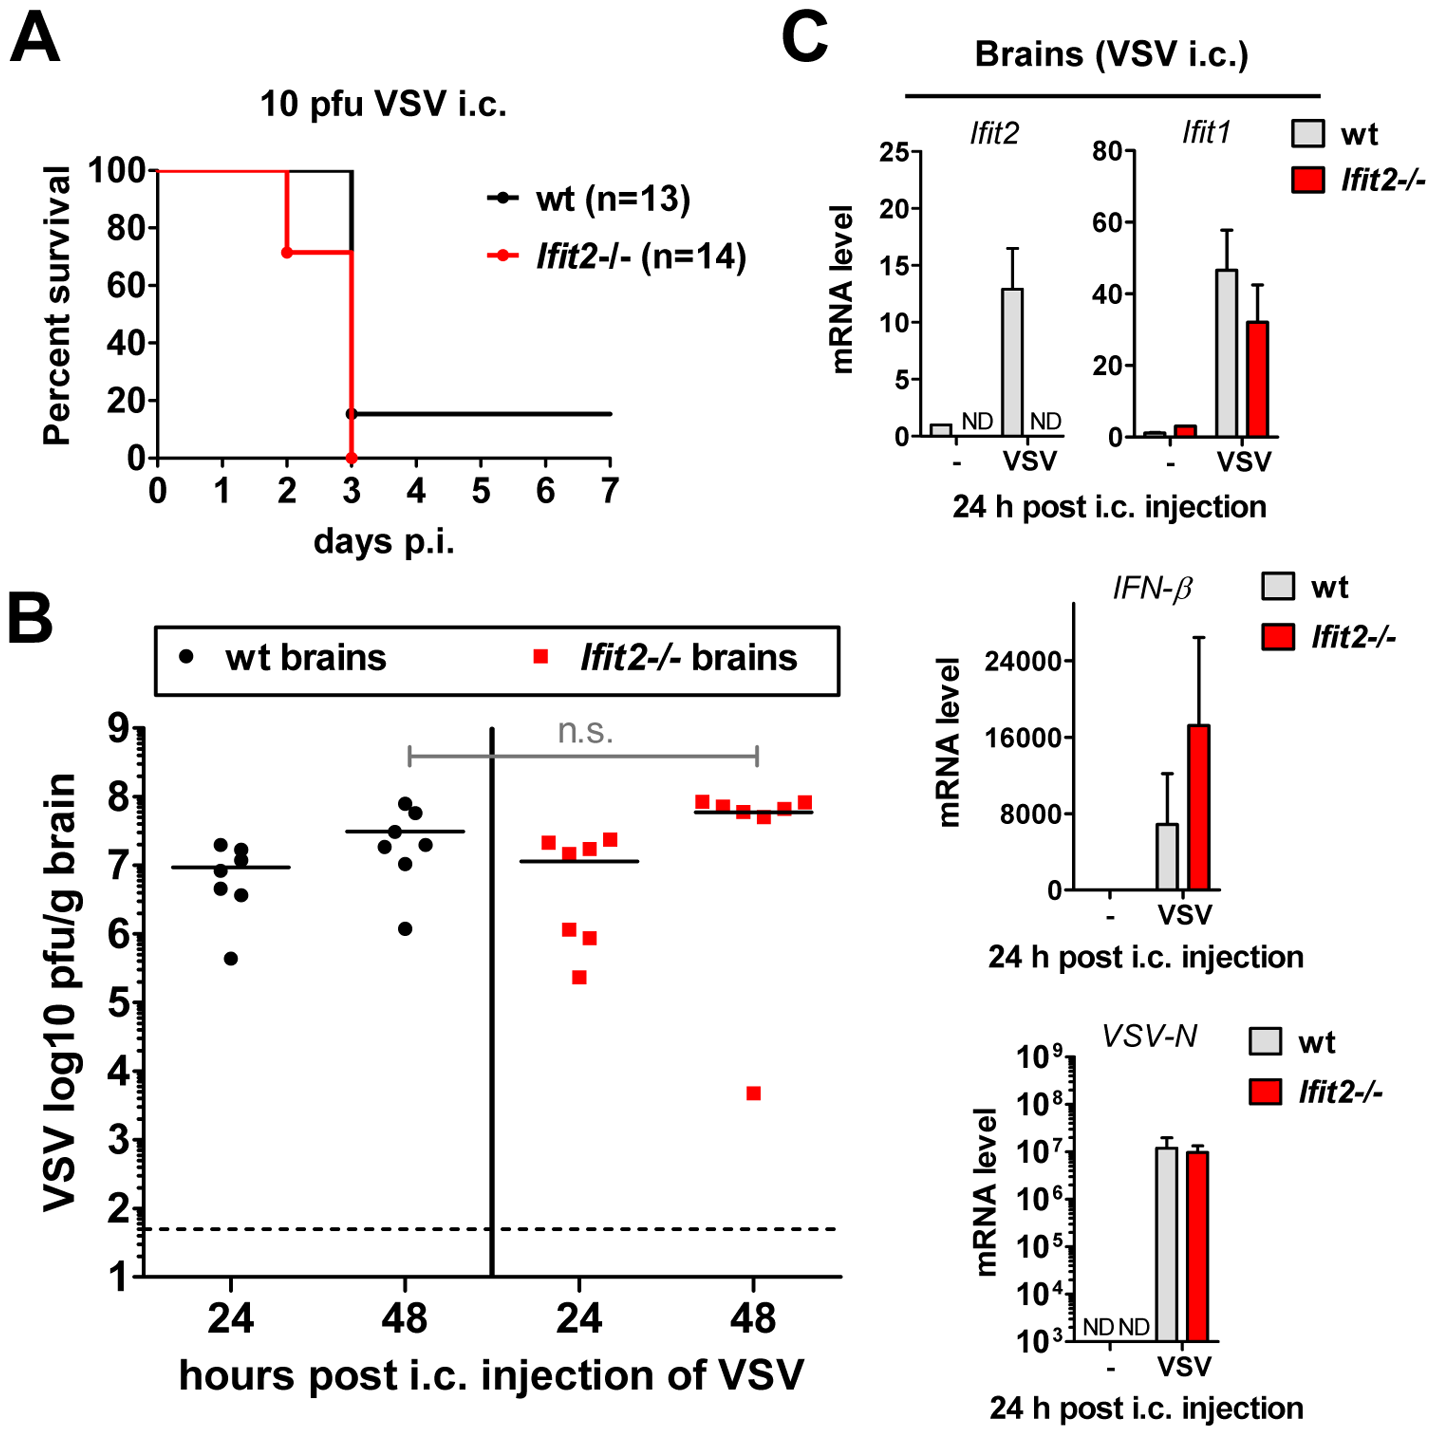 Wt mice are as susceptible as <i>Ifit2<sup>−/−</sup></i> mice to intracranial VSV infection.